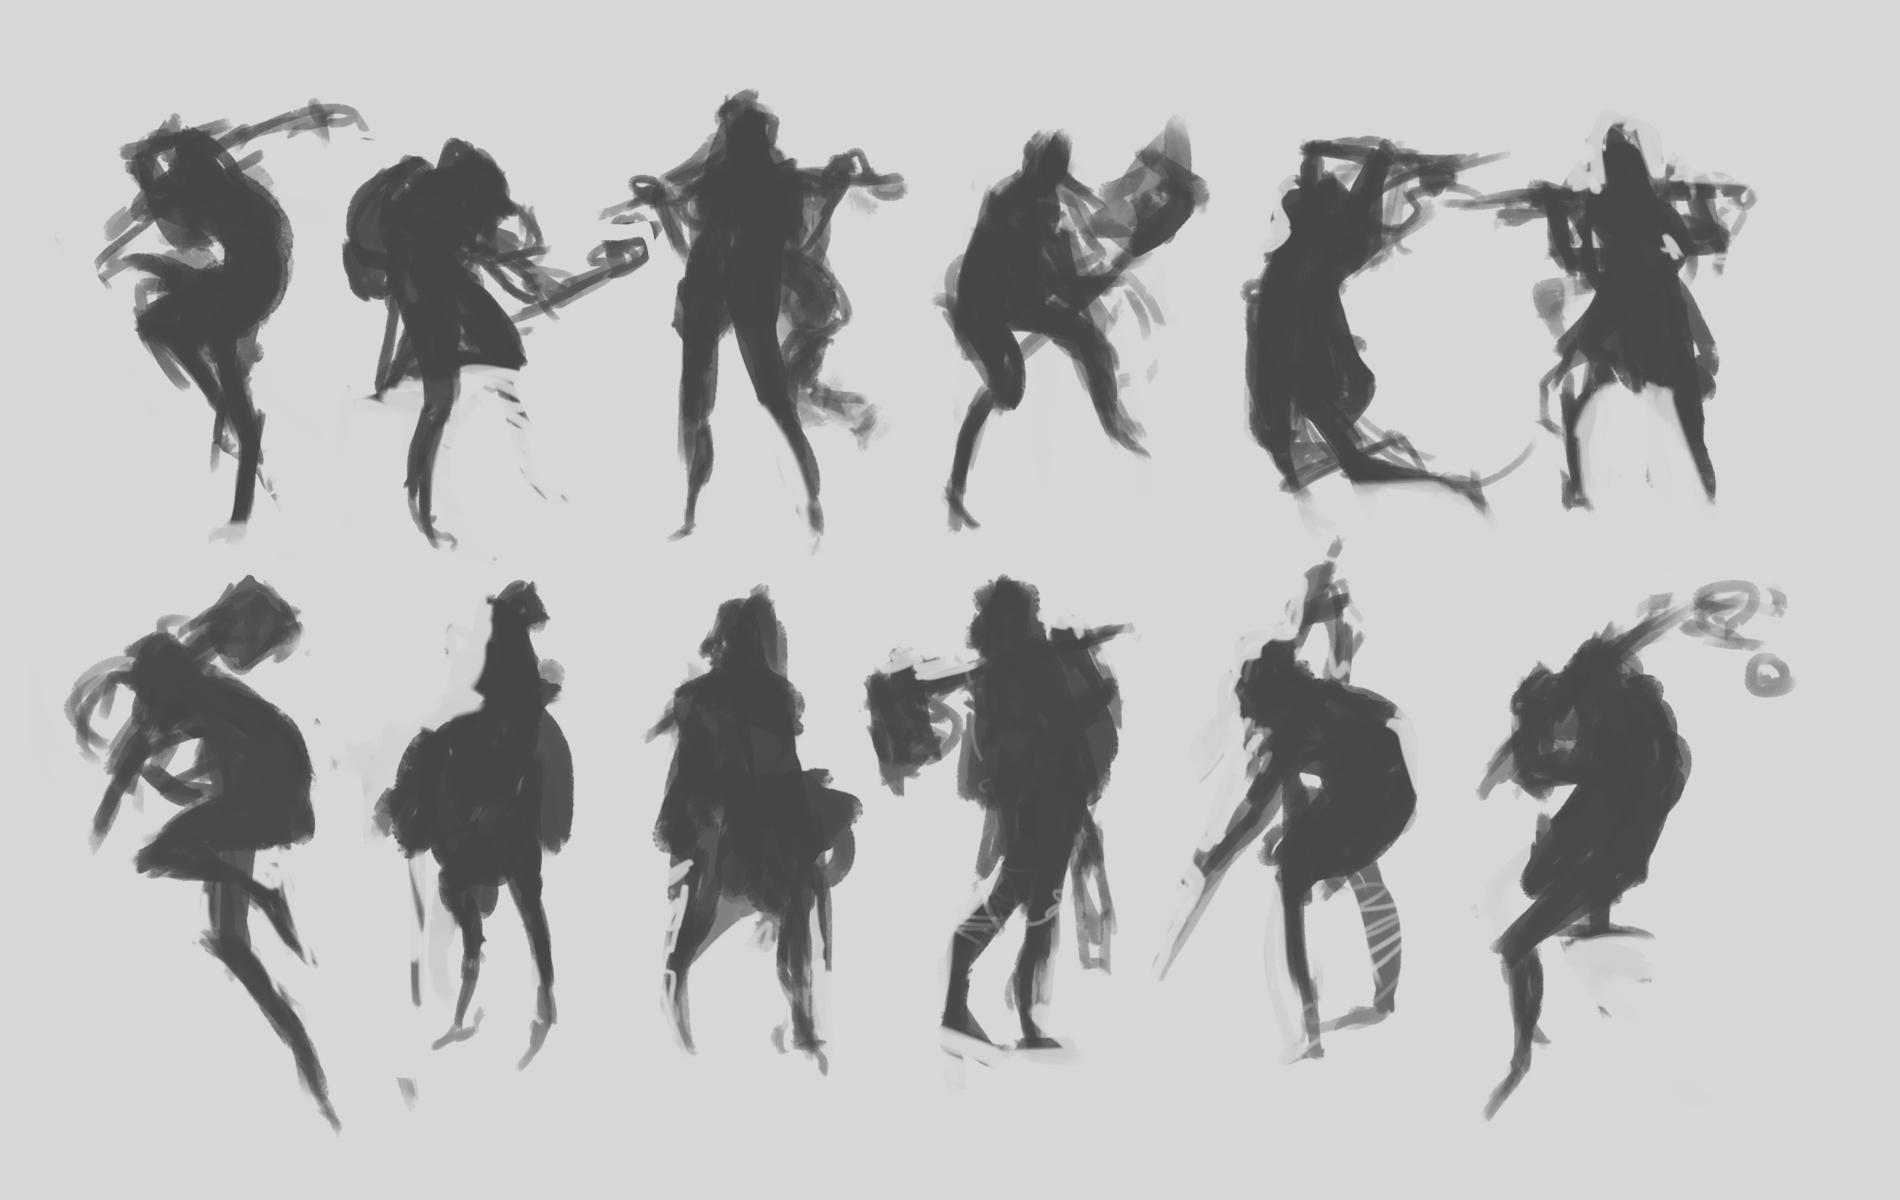 images How to Draw Concept Art for a Game